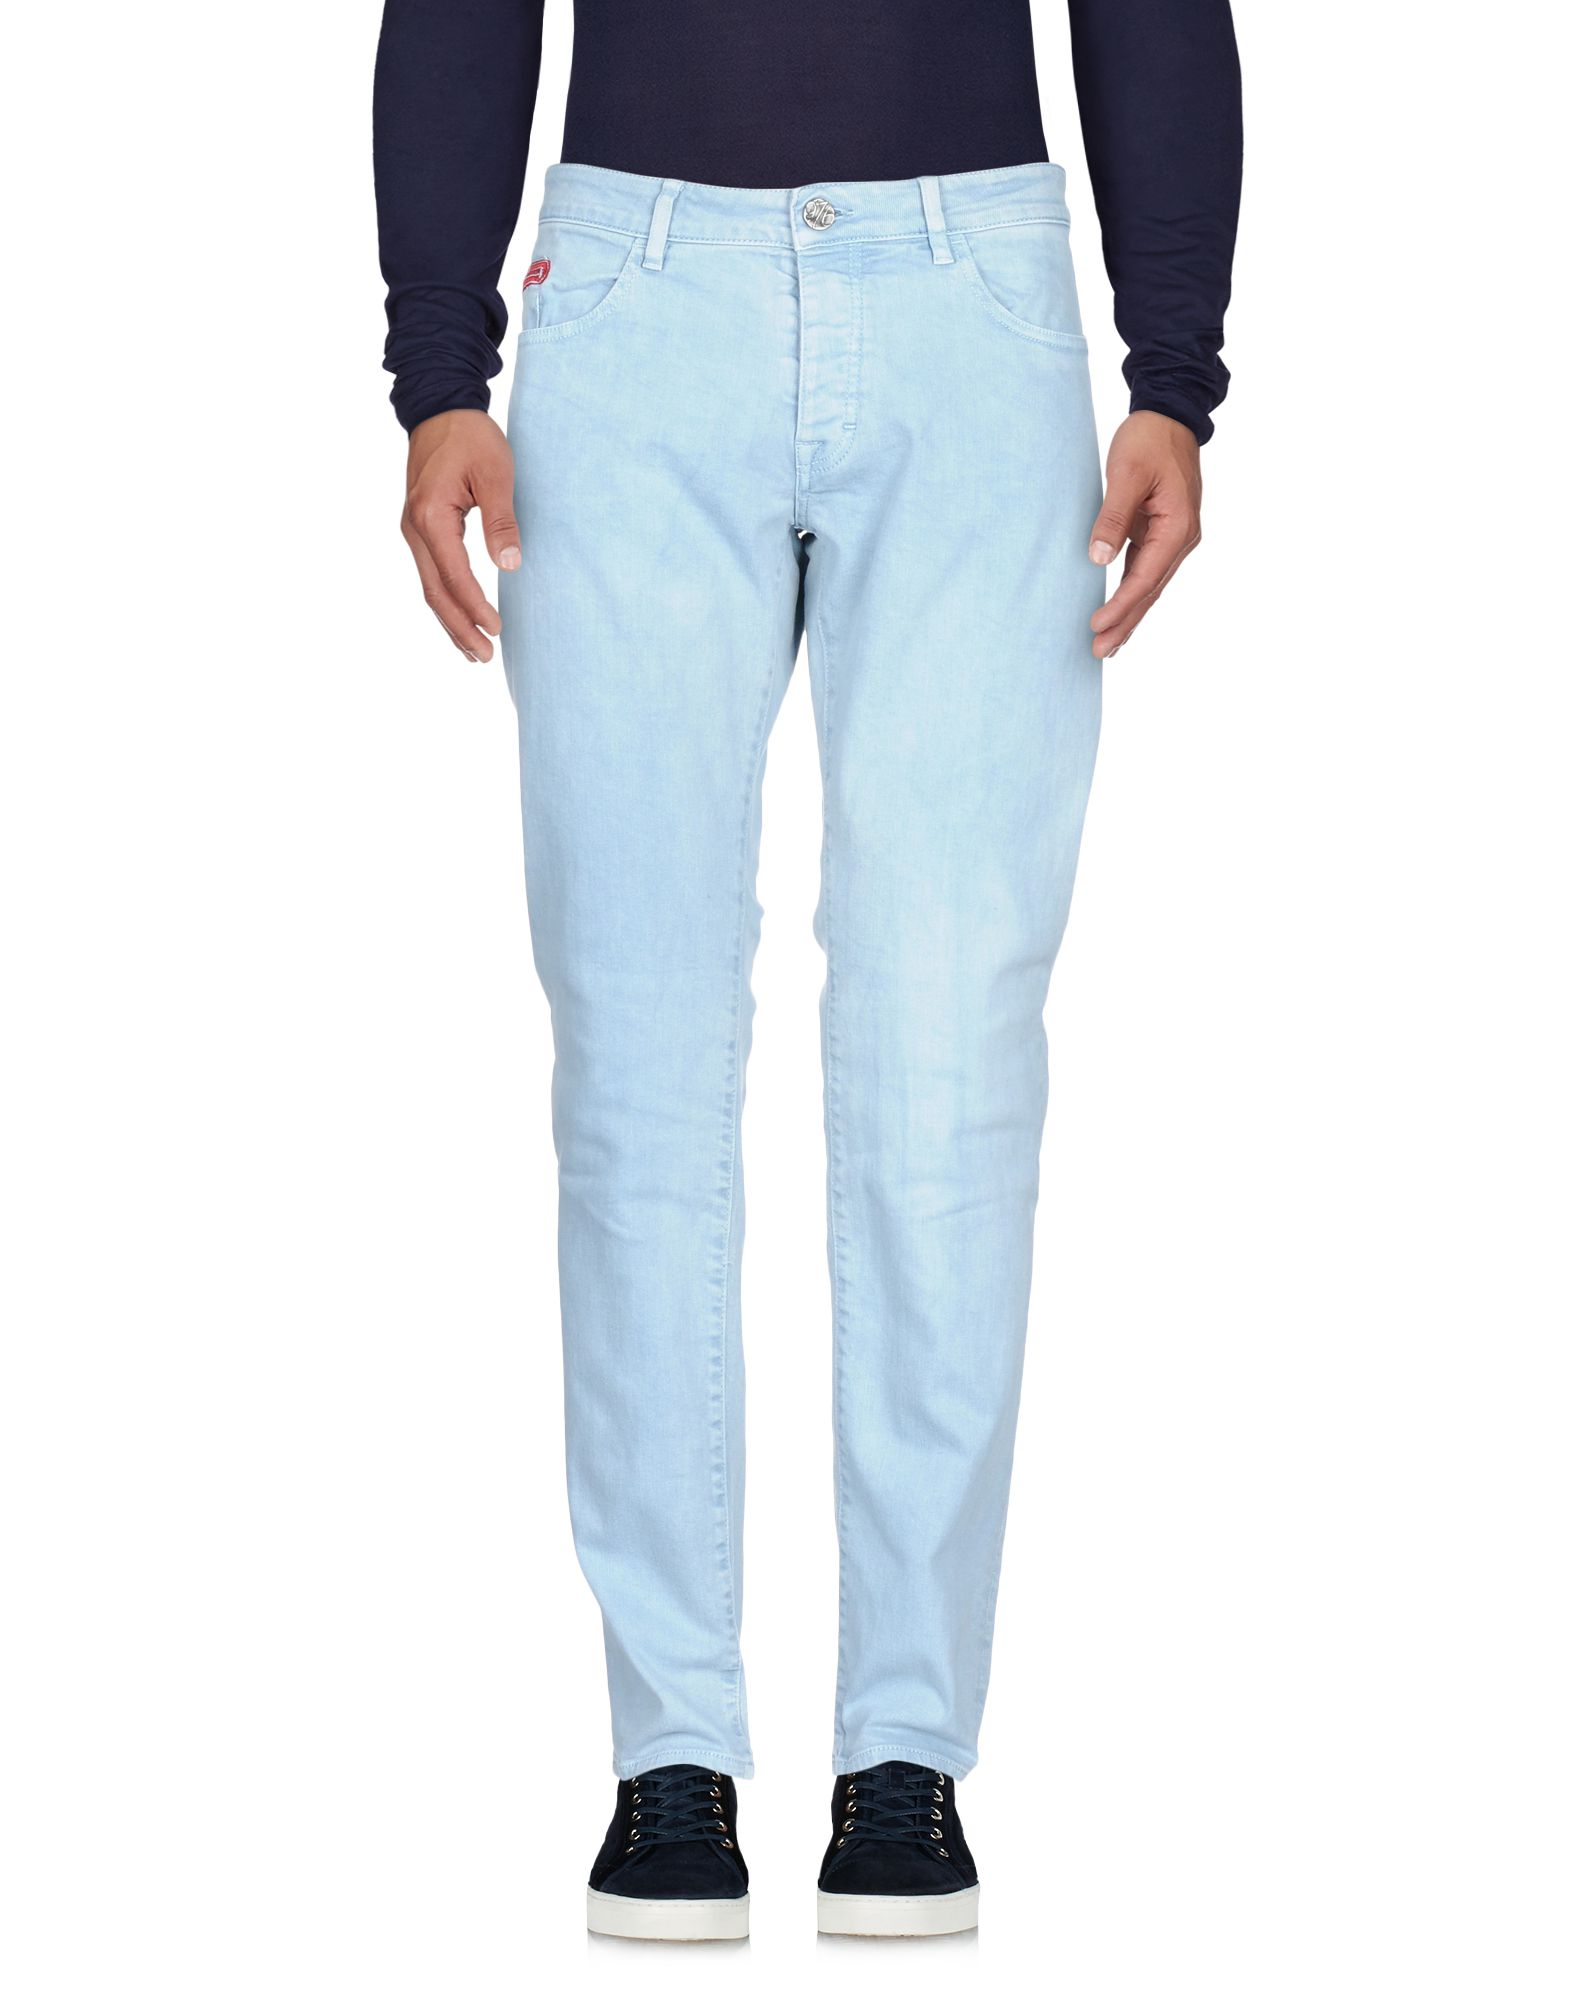 UNLIMITED Denim Pants in Sky Blue